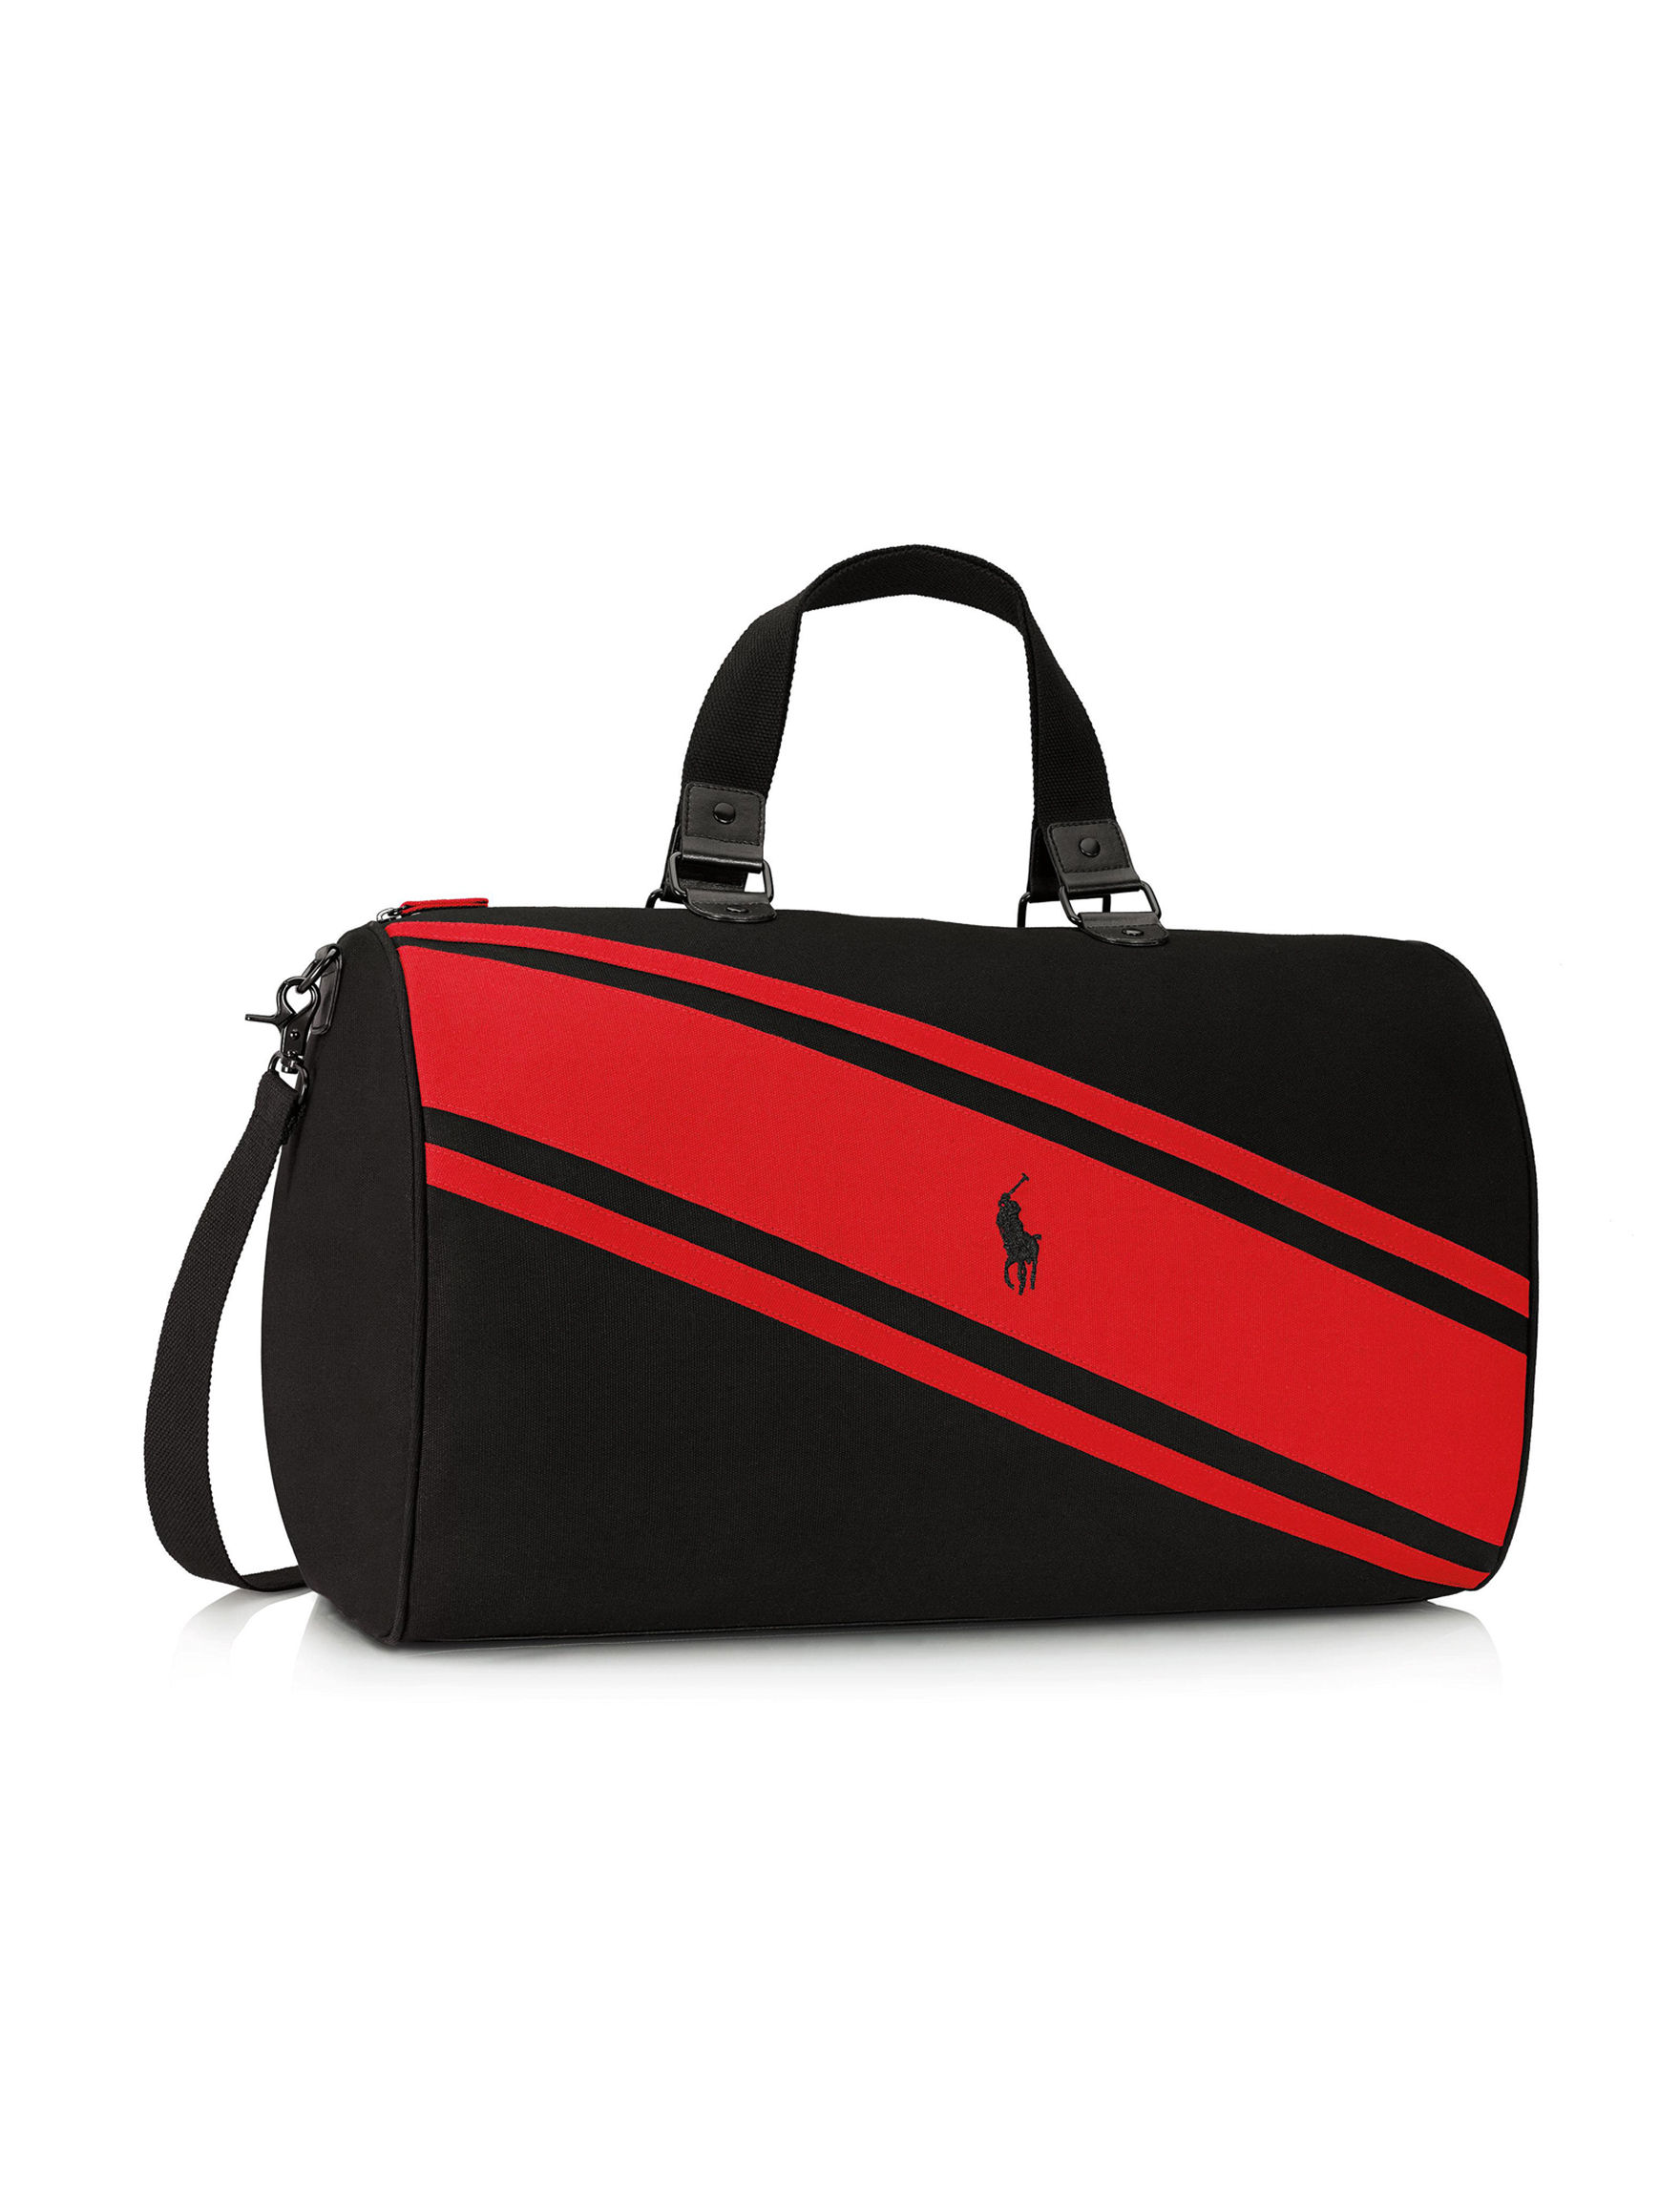 bcaba5ad5932 Ralph Lauren Polo Red Striped Duffle Bag Gift with Purchase   Stage ...